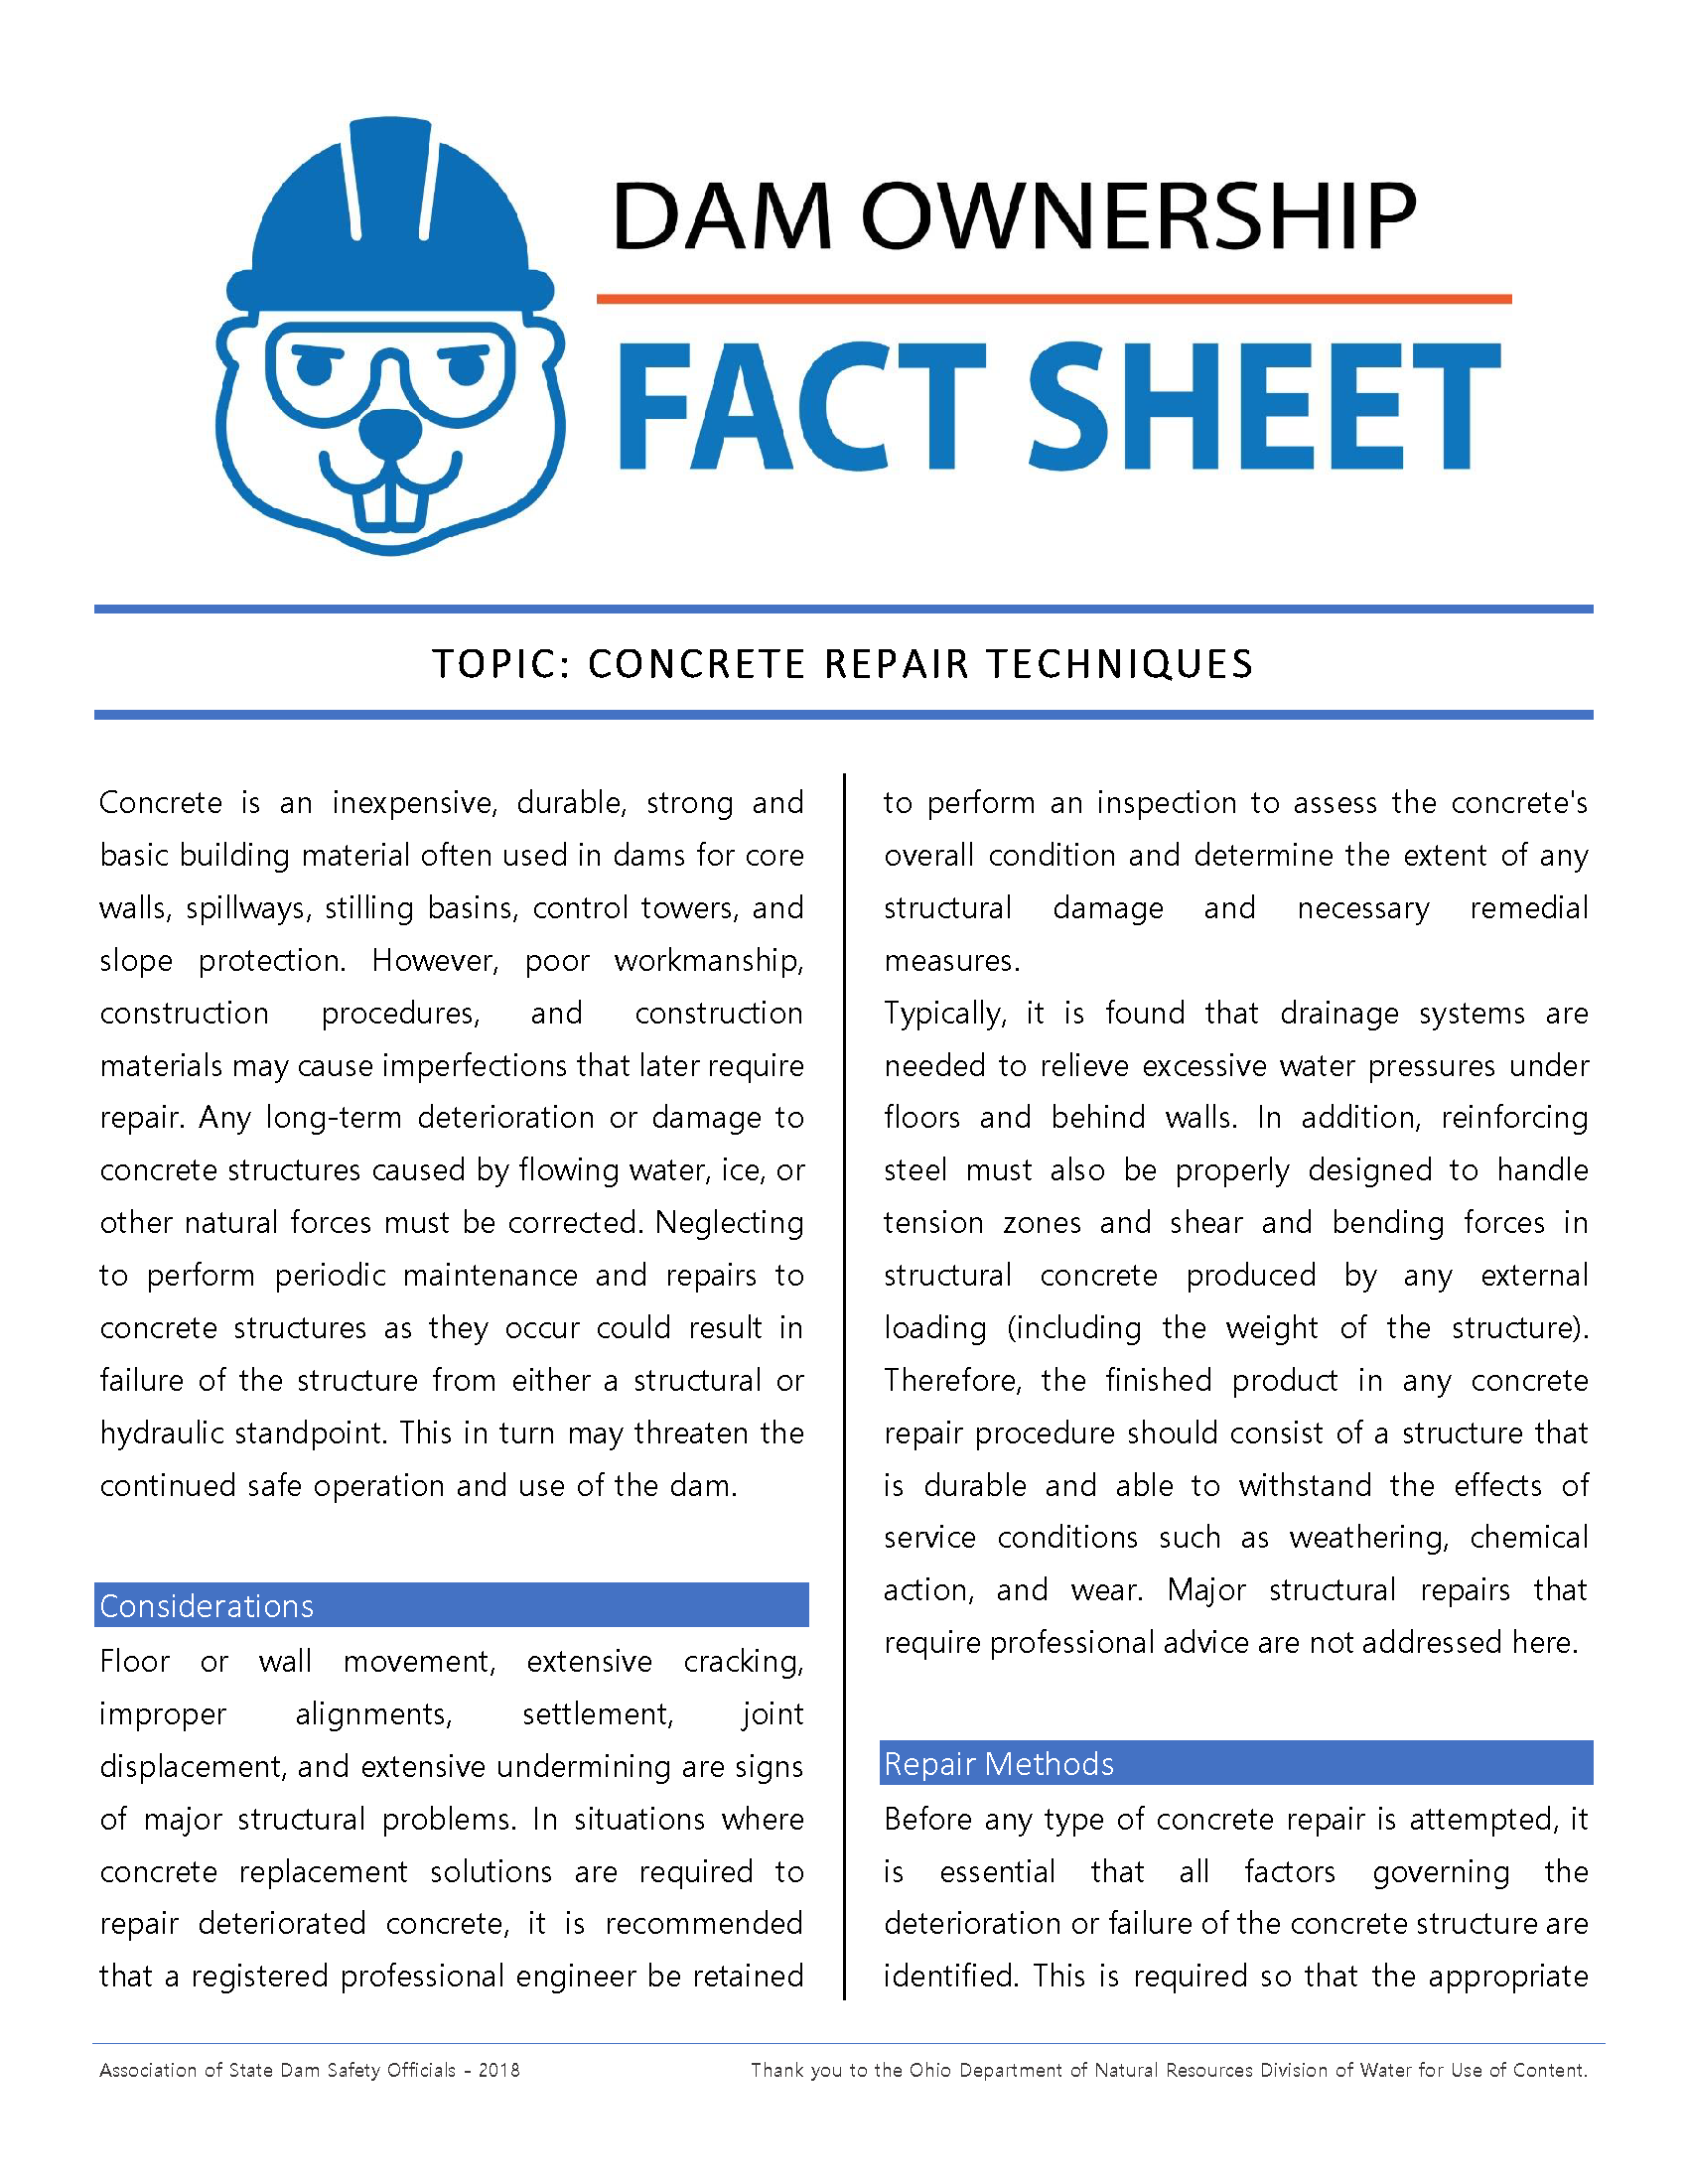 Concrete Repair Techniques Fact Sheet 2018.png